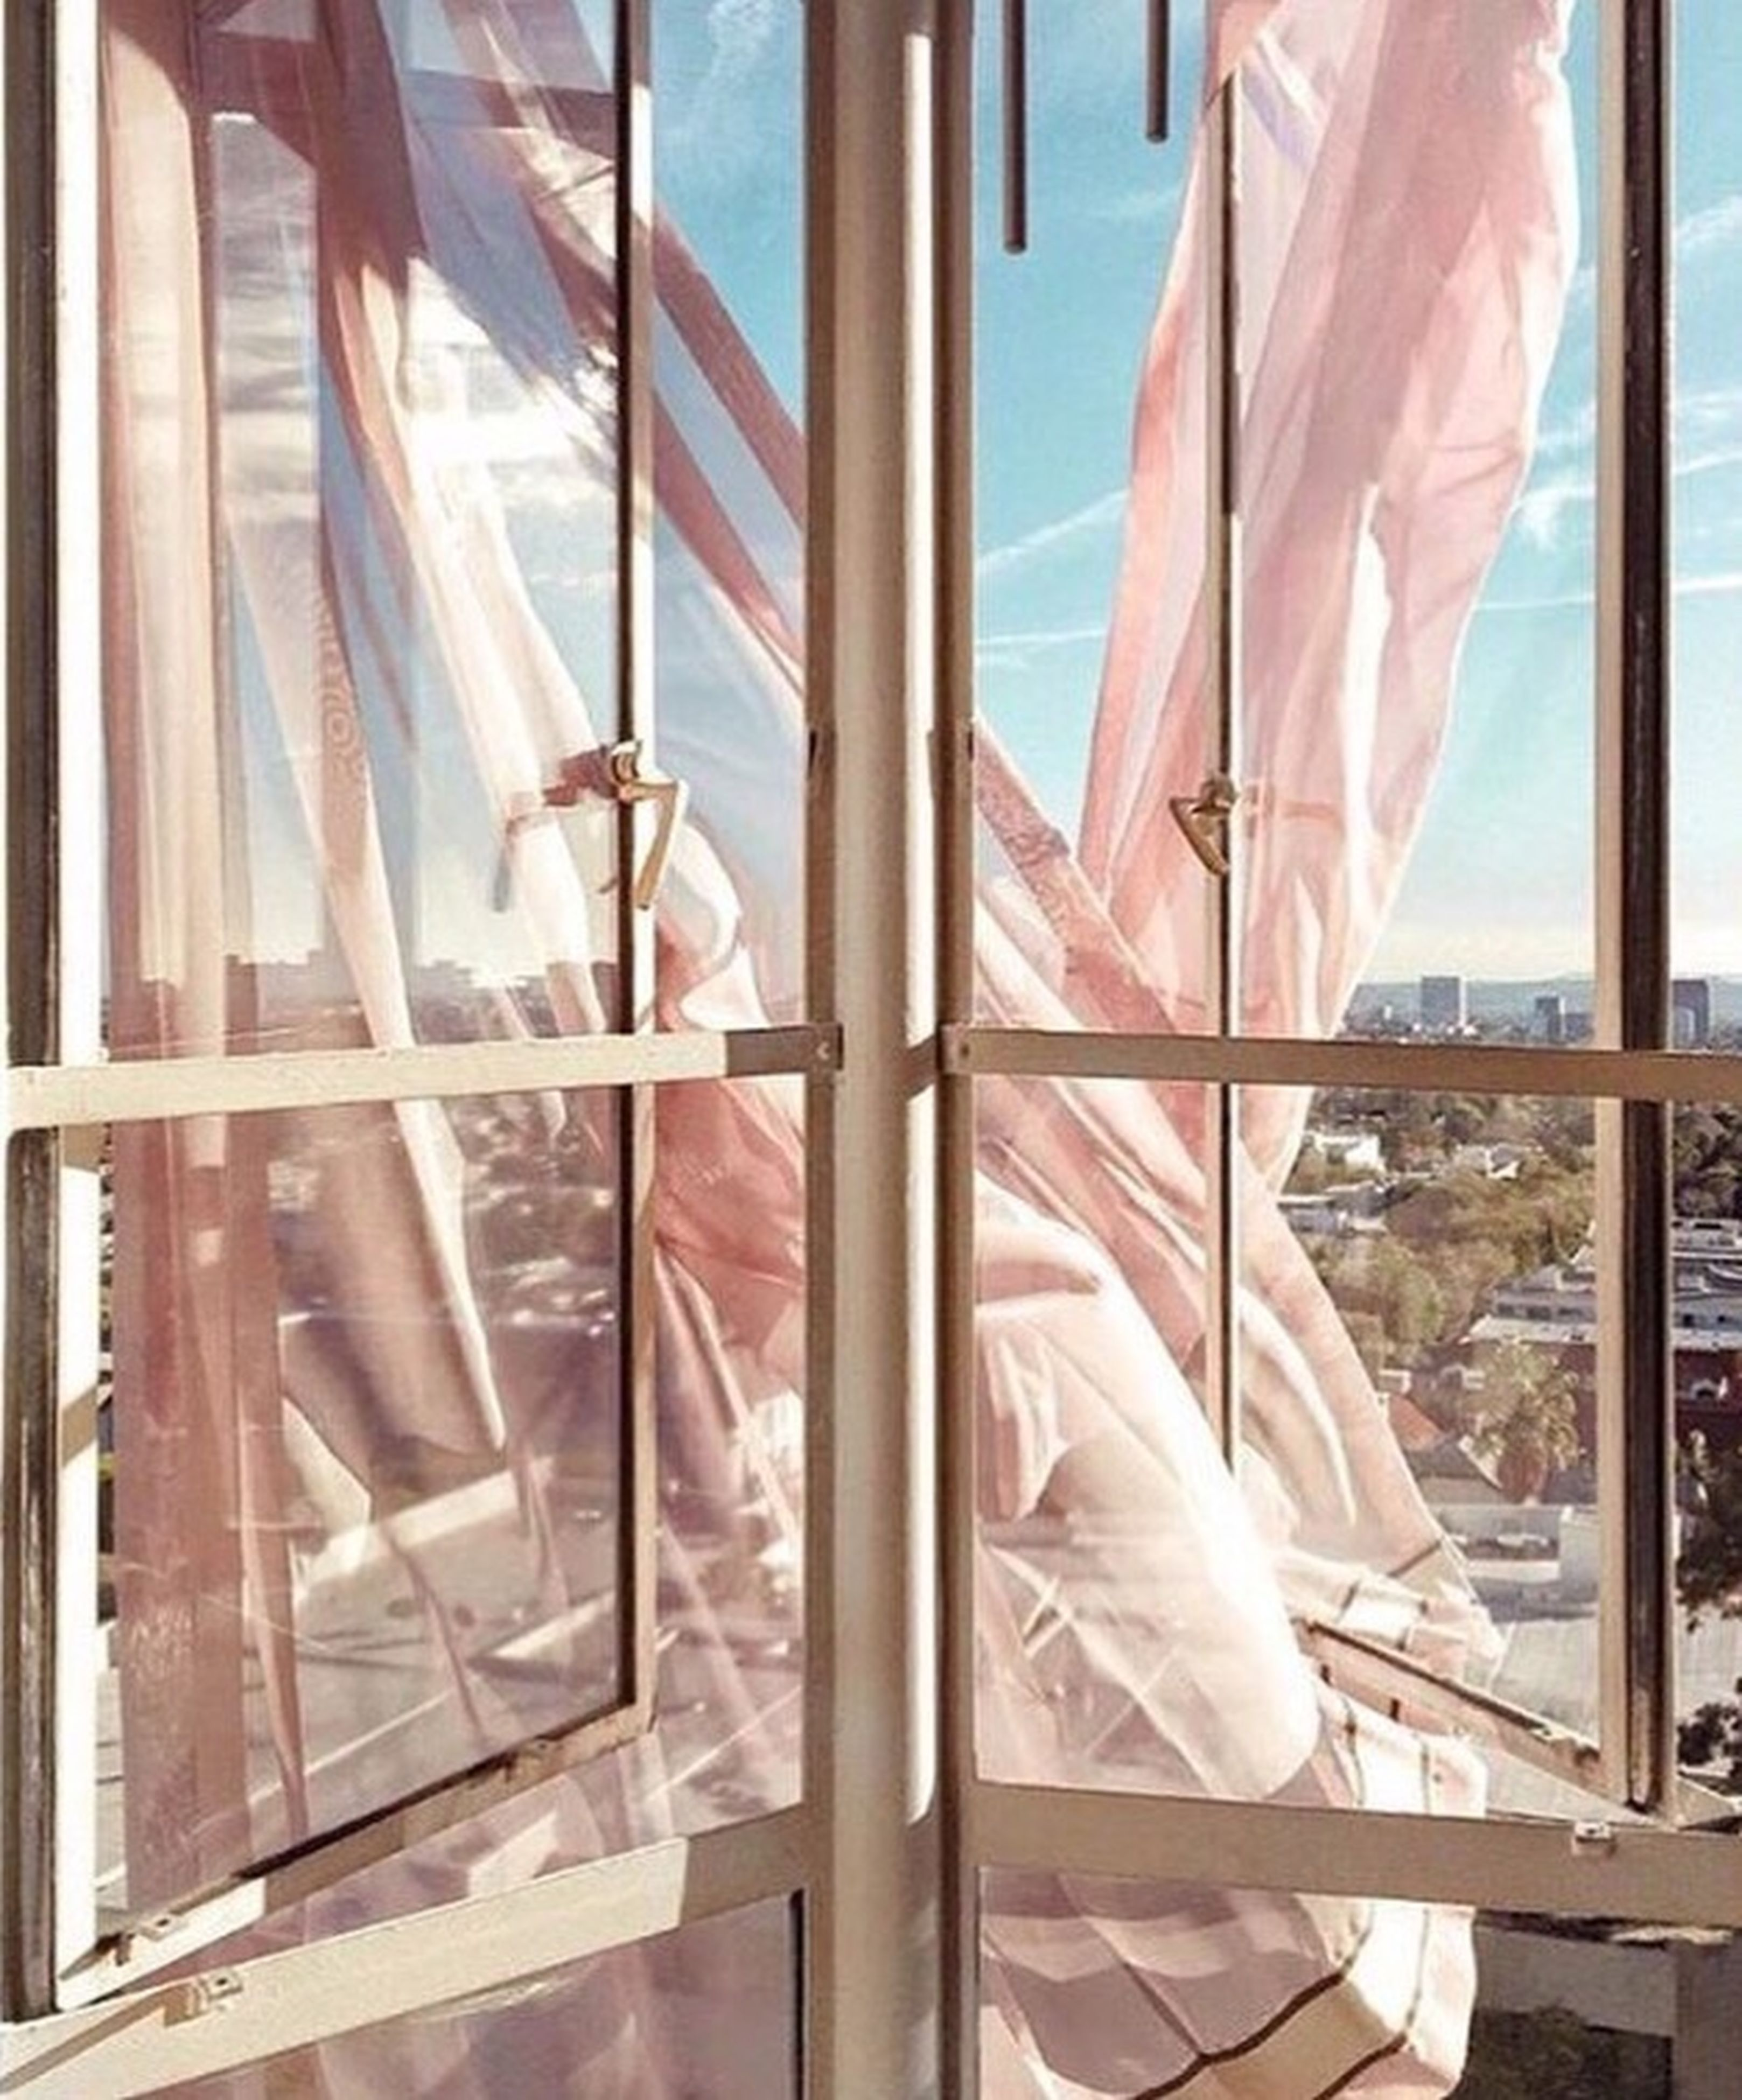 indoors, window, built structure, curtain, glass - material, low angle view, sunlight, day, architecture, part of, fabric, hanging, railing, transparent, metal, textile, rope, sky